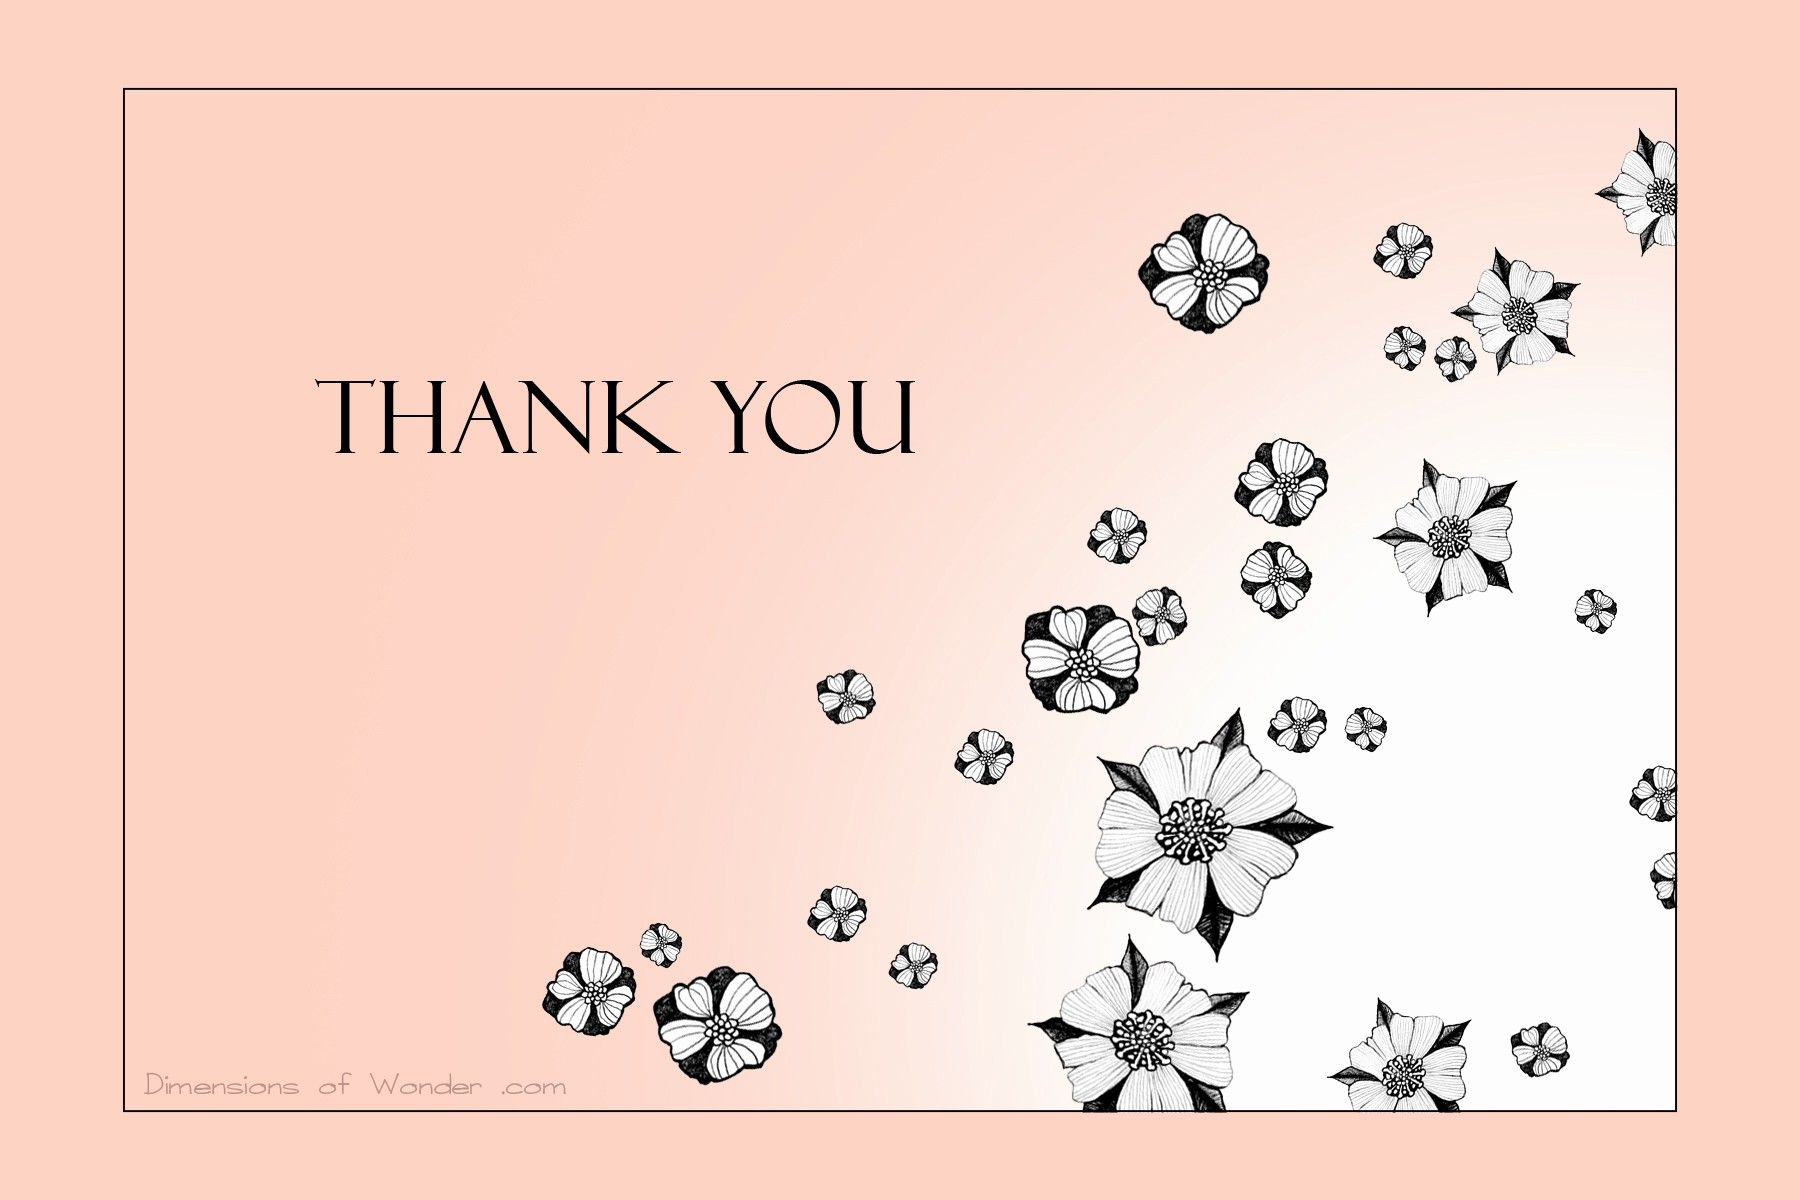 Thank You Card Template Word Inspirational Thank You Card Template For Word Portableg Free Printable Card Templates Thank You Card Template Thank You Postcards